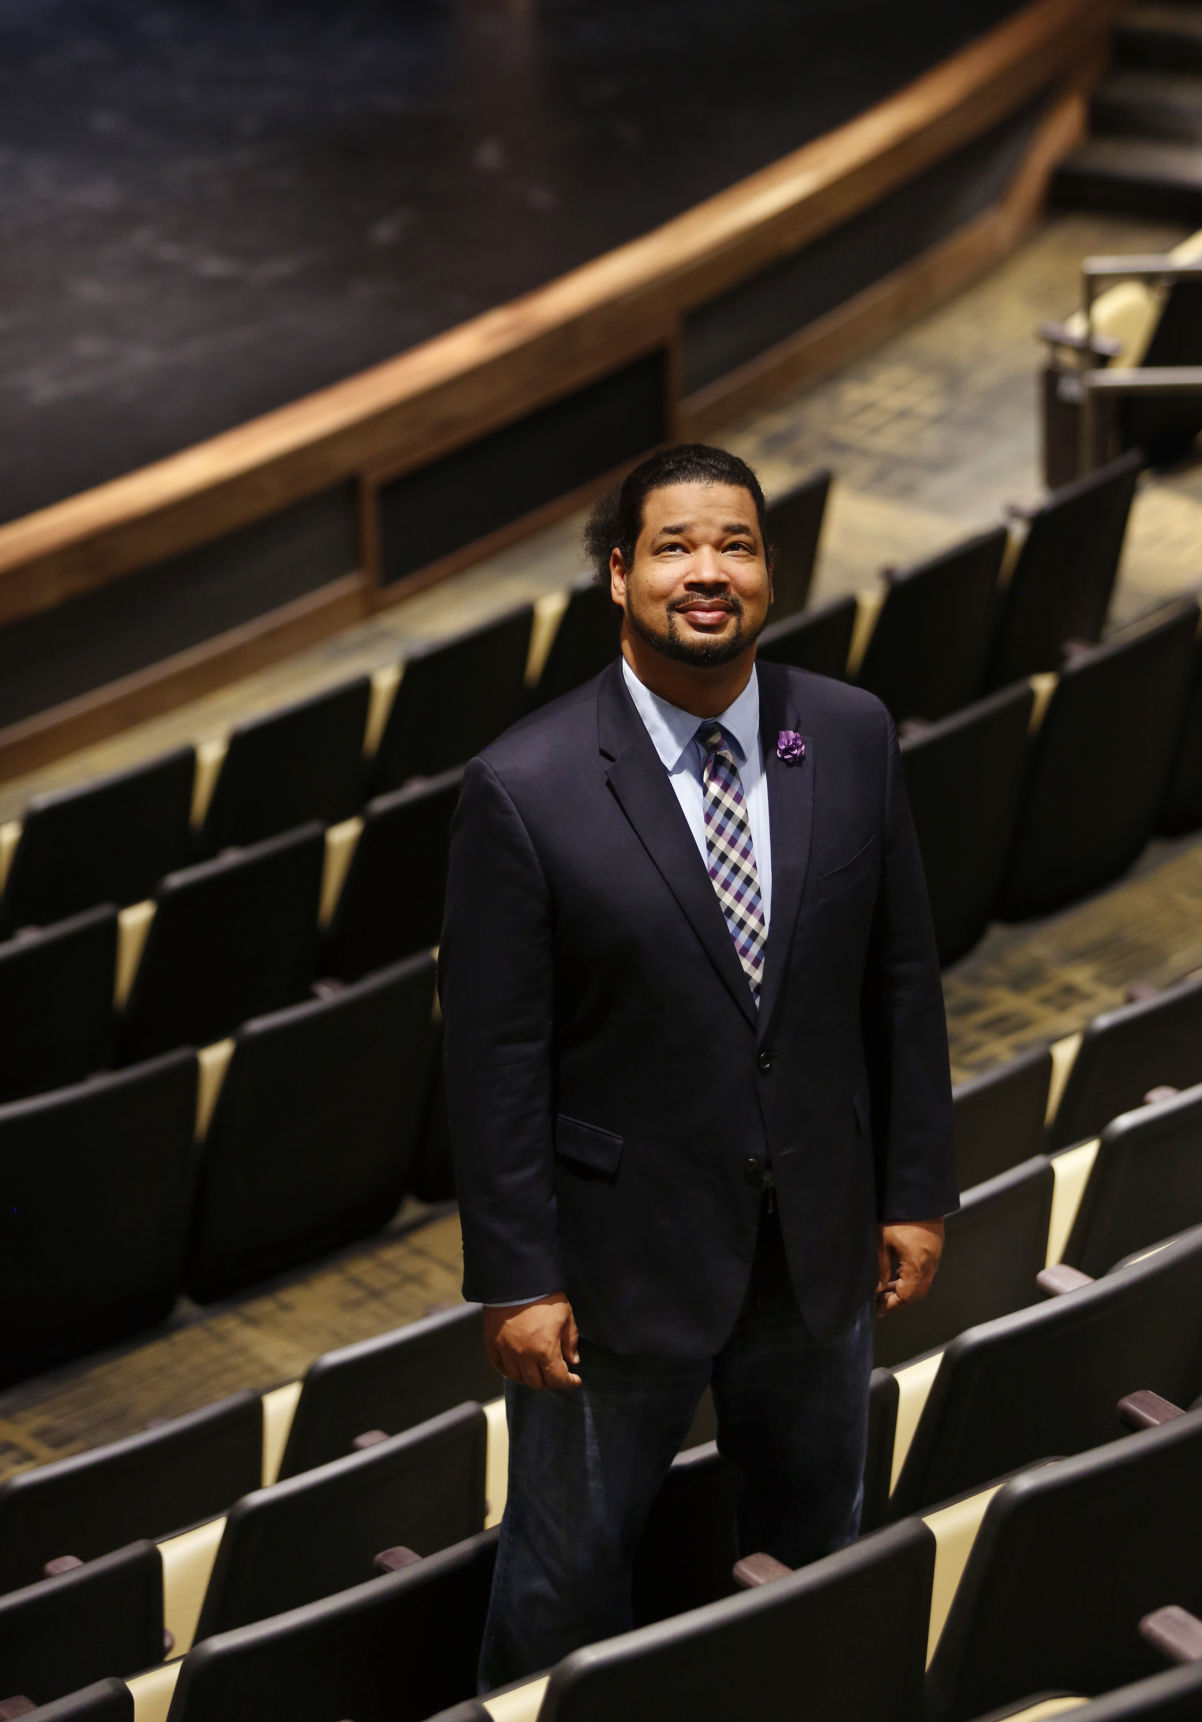 Anthony Stockard's journey from foster care to Theater Director